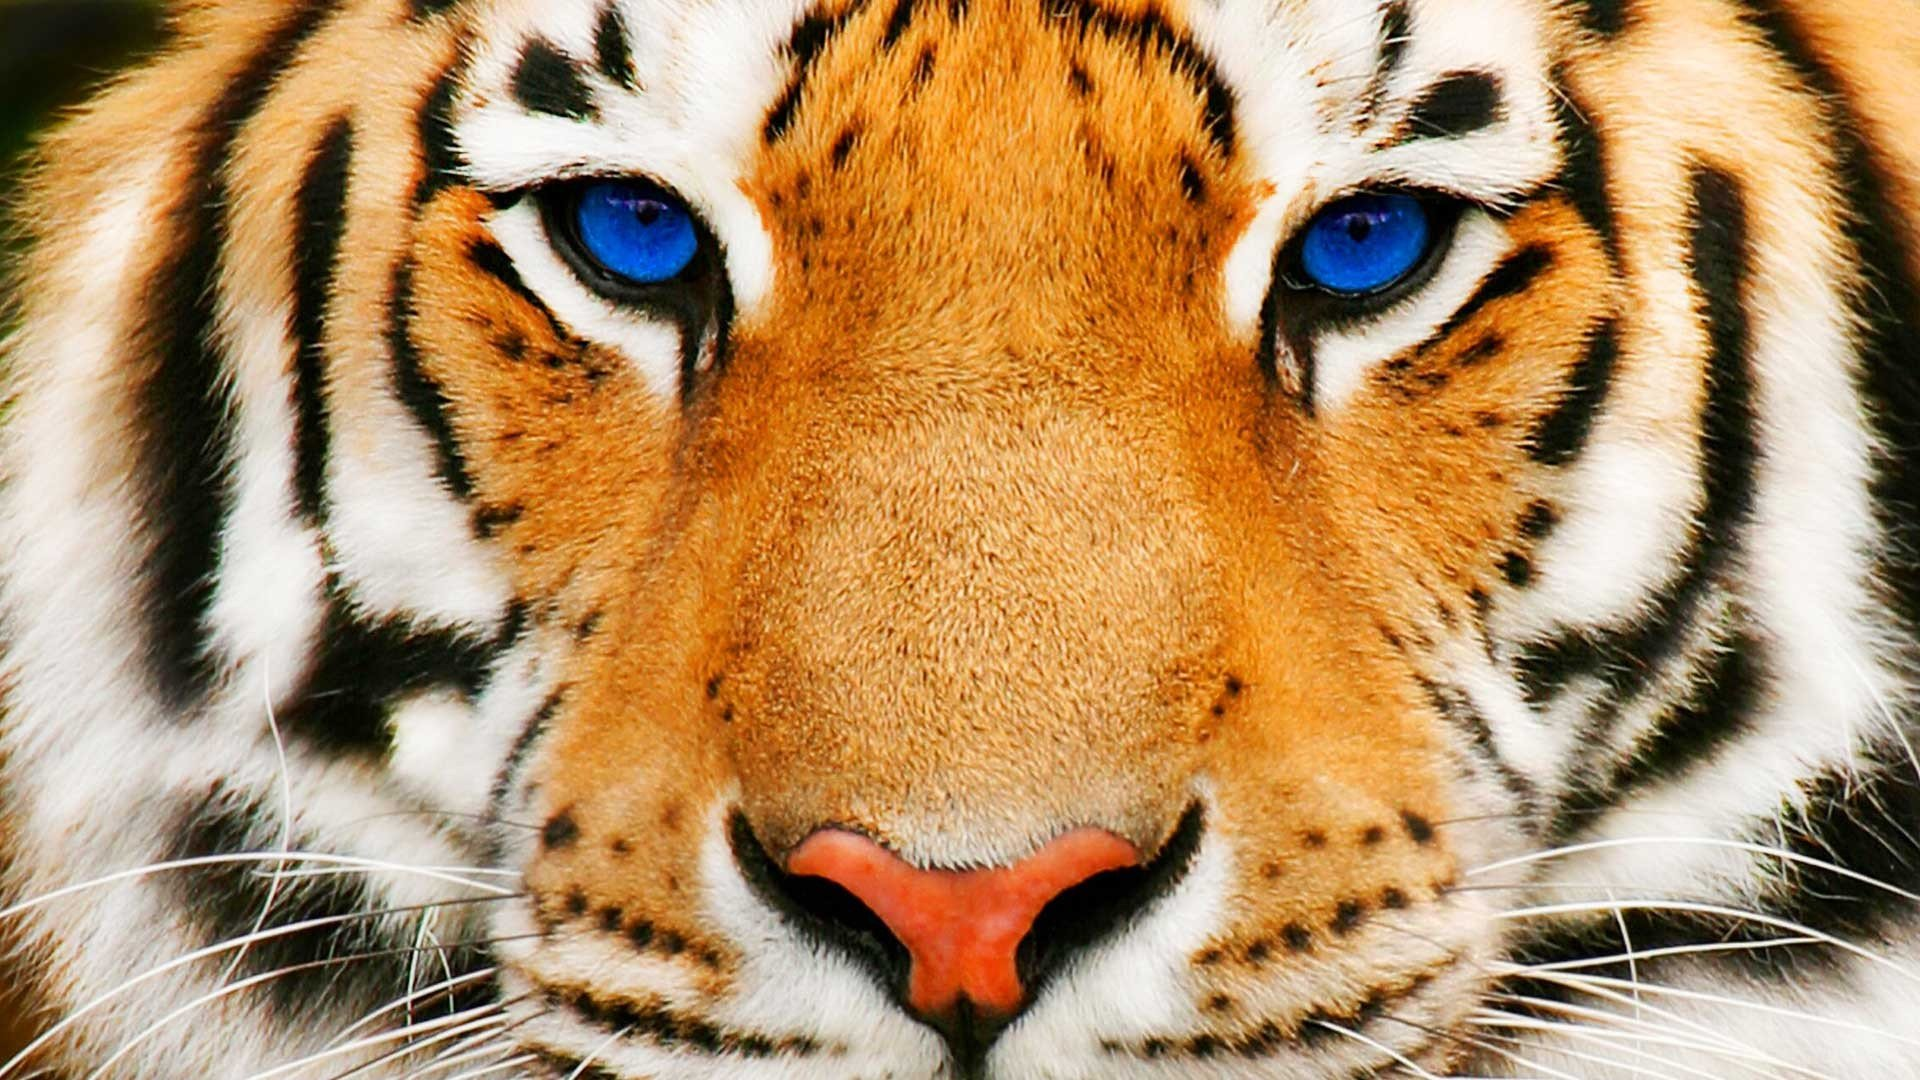 Tiger Face HD